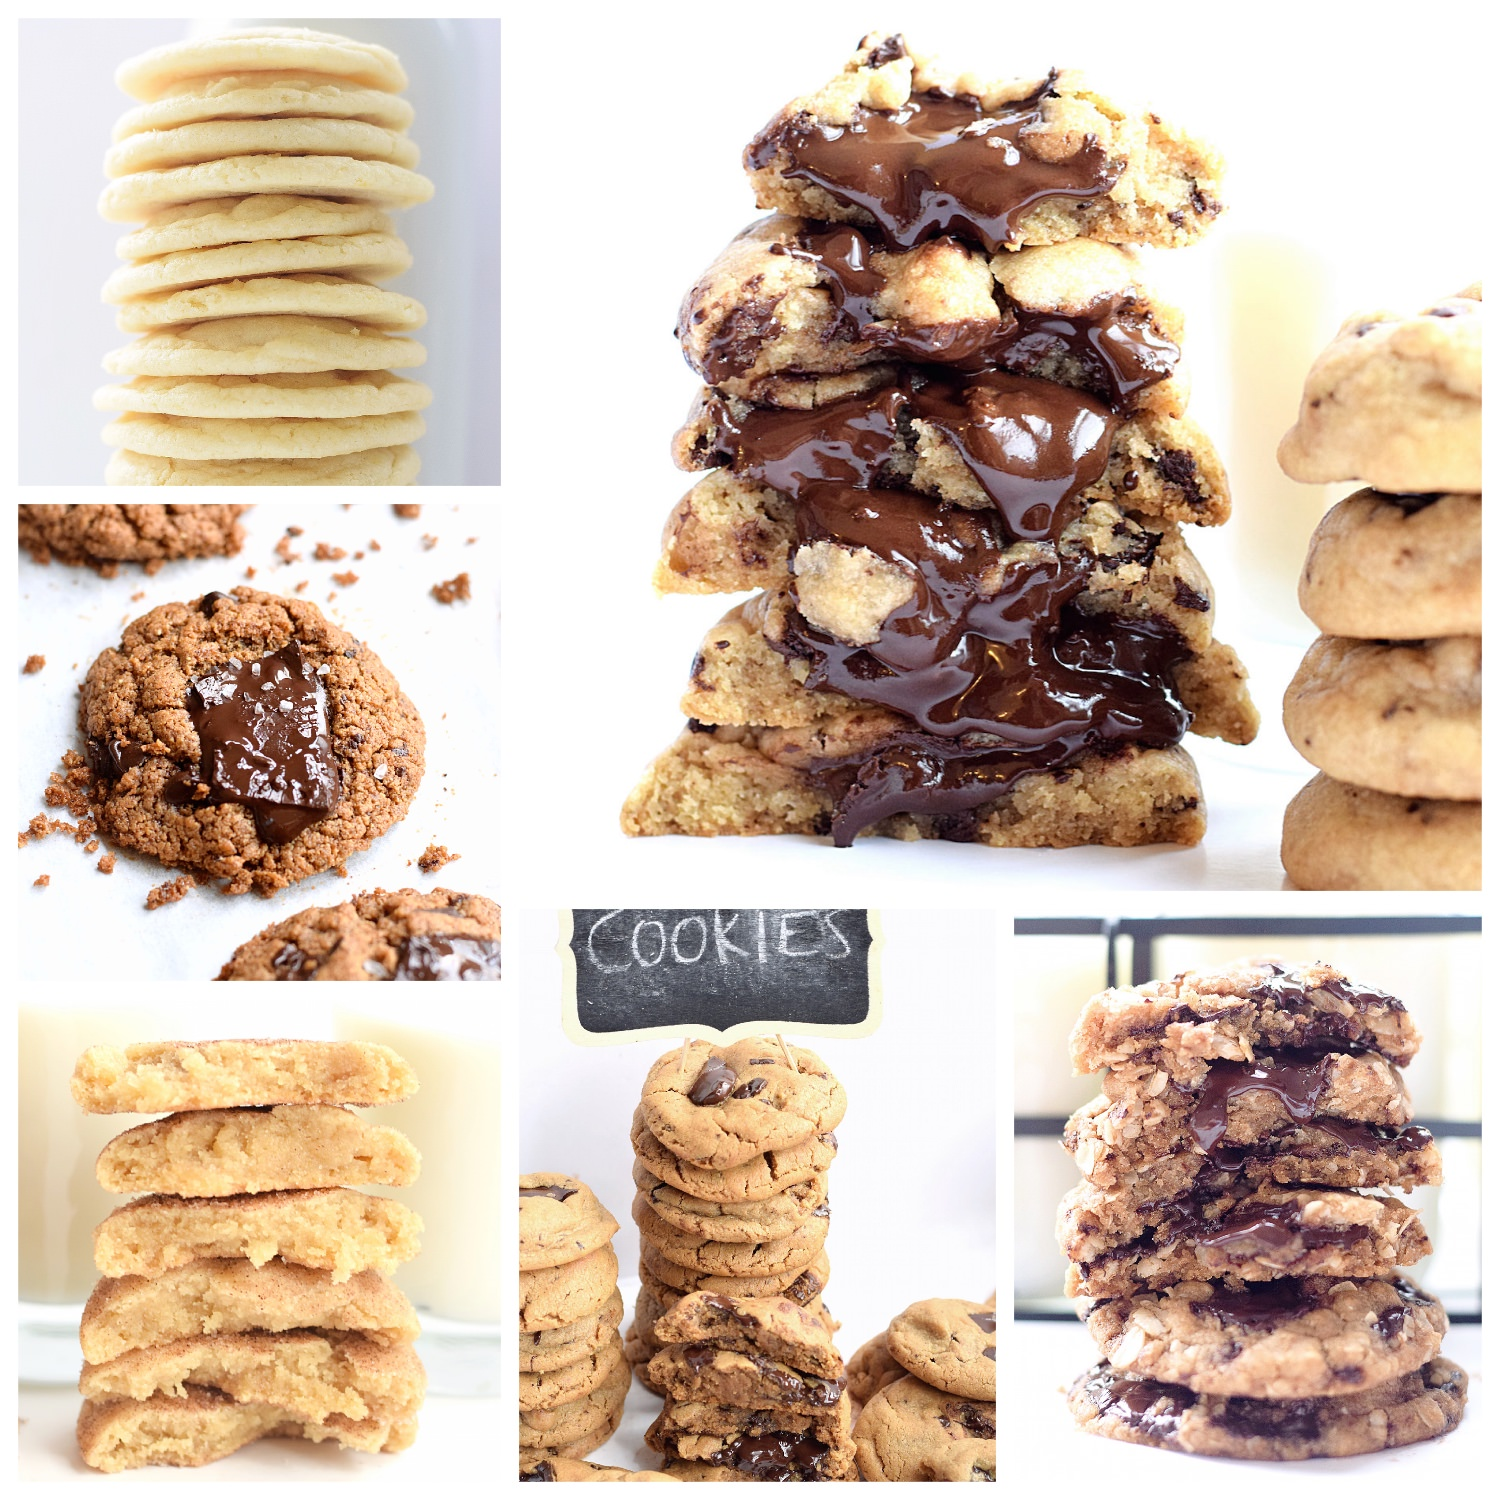 Top 10 Cookie Recipes from the Blog   TrufflesandTrends.com